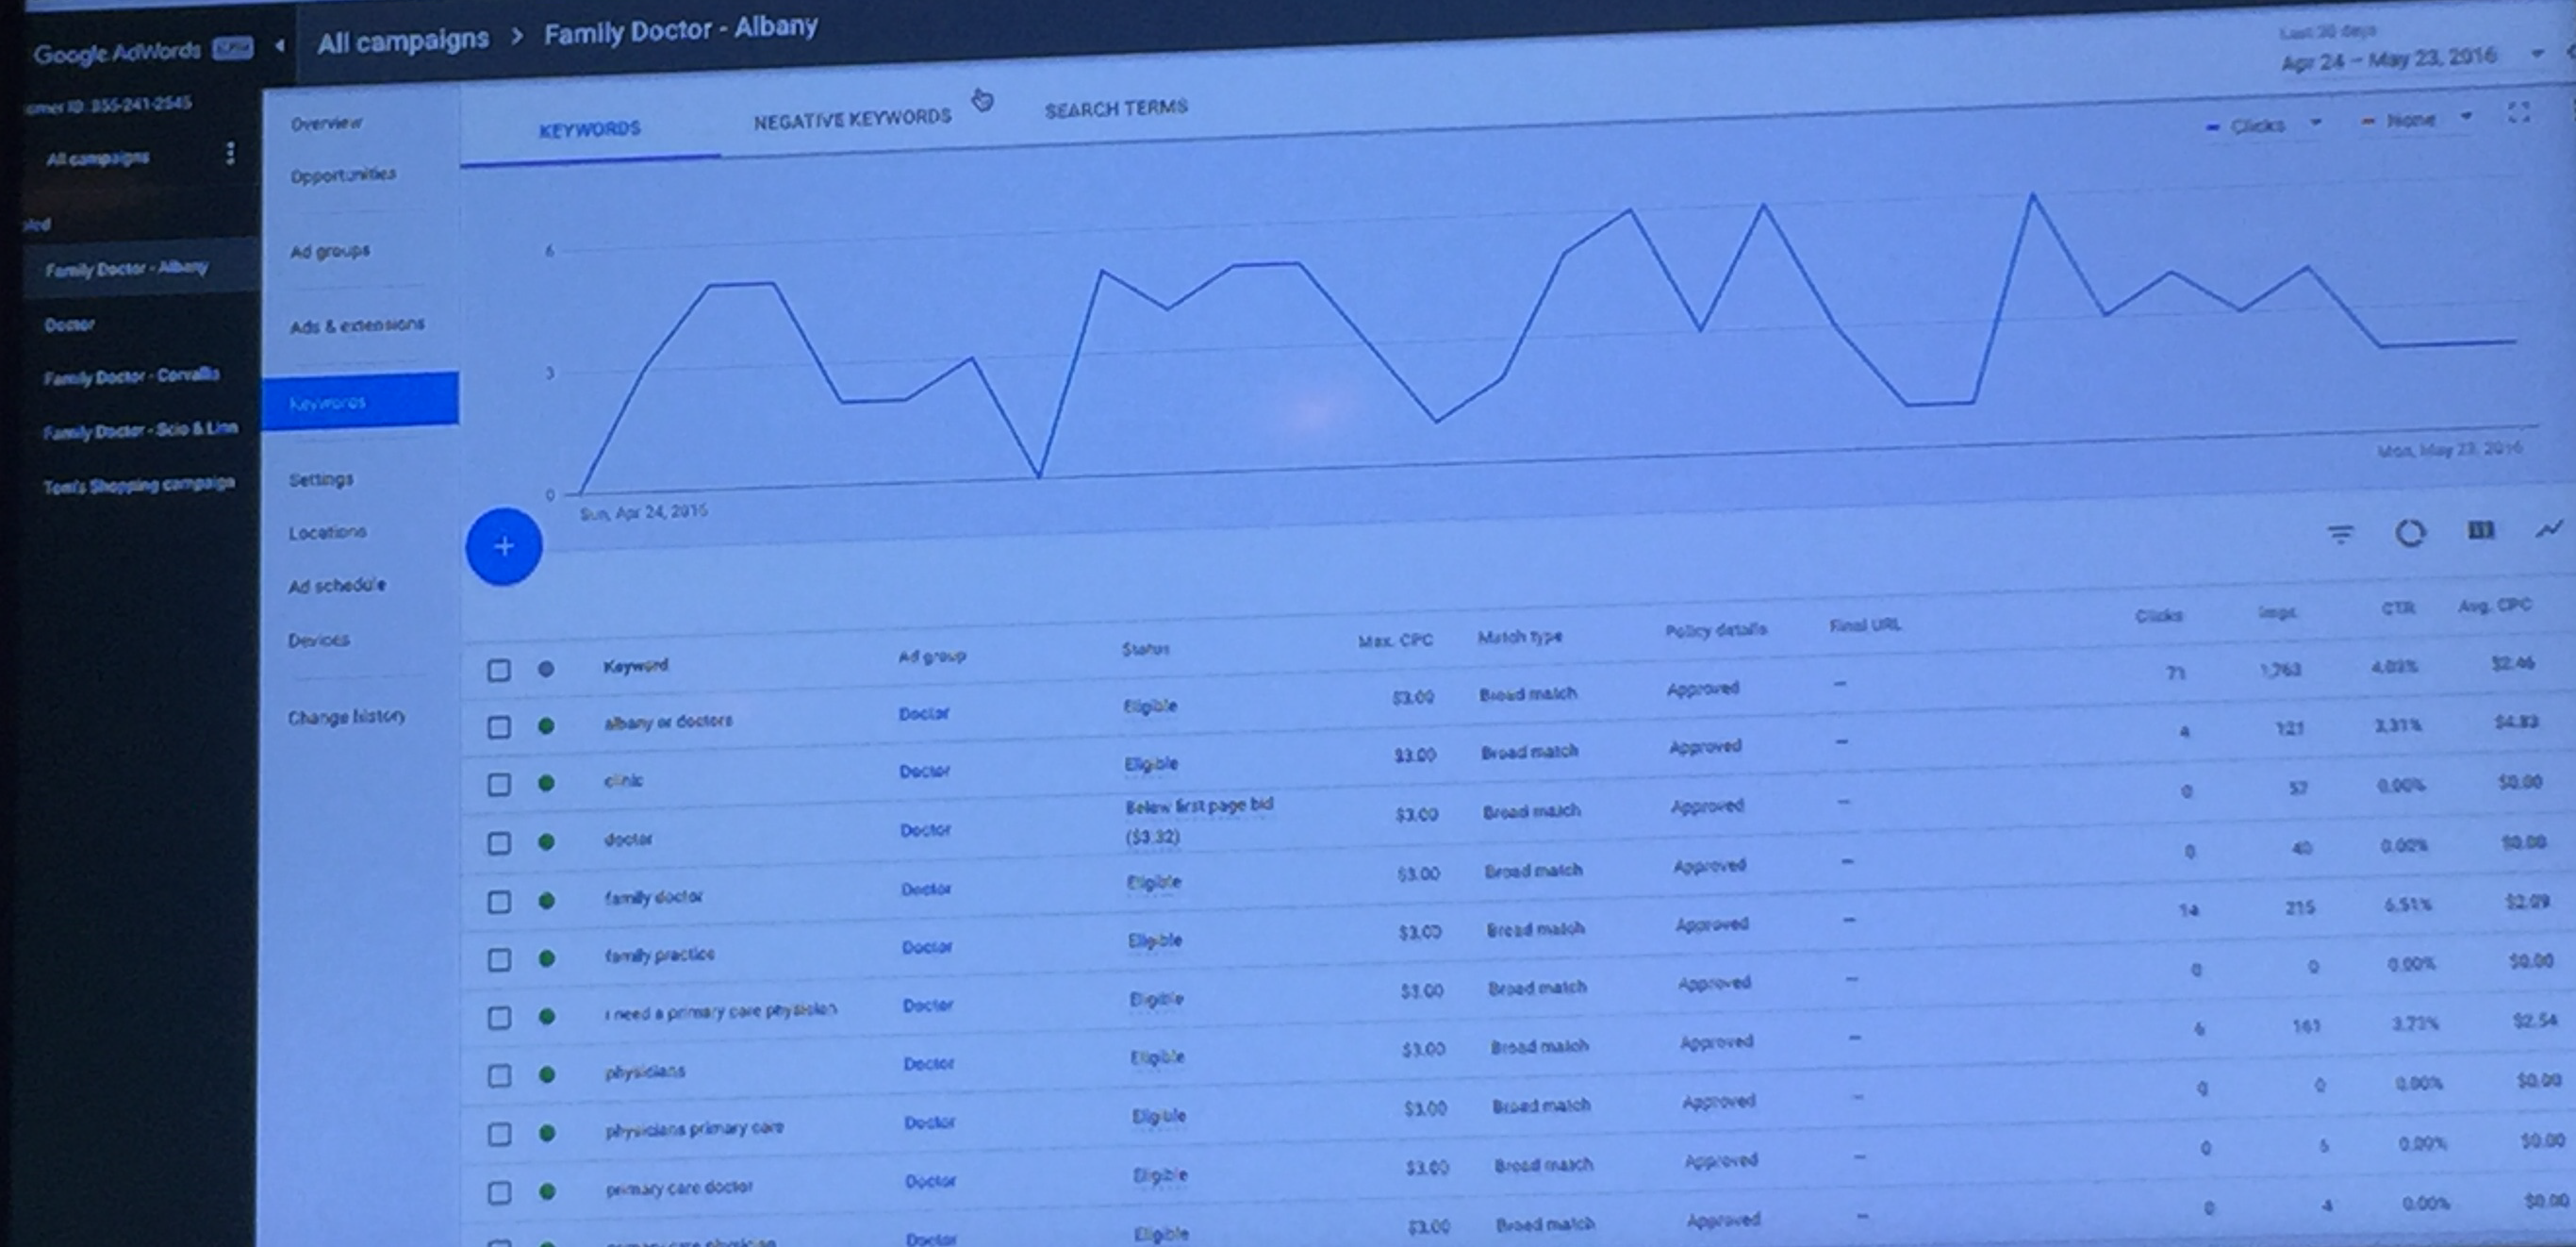 New AdWords interface negatives